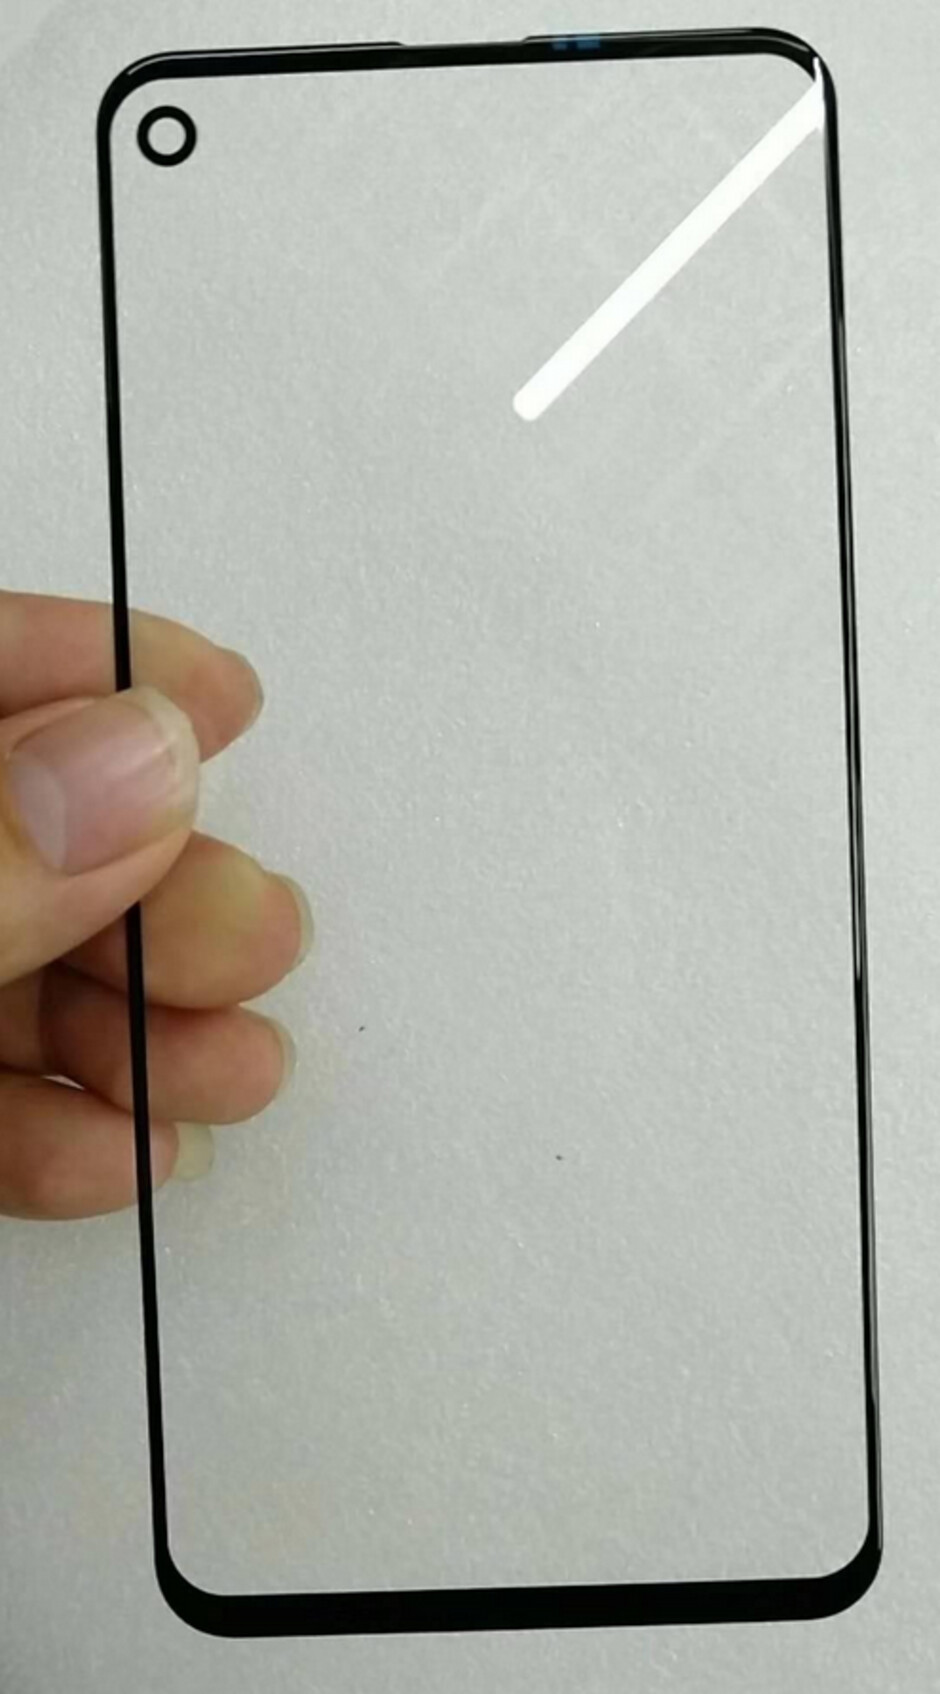 Alleged screen protector for the Samsung Galaxy A8s with a cutout for the in-screen camera - In-screen camera cutout seen on screen protector allegedly made for Samsung Galaxy A8s